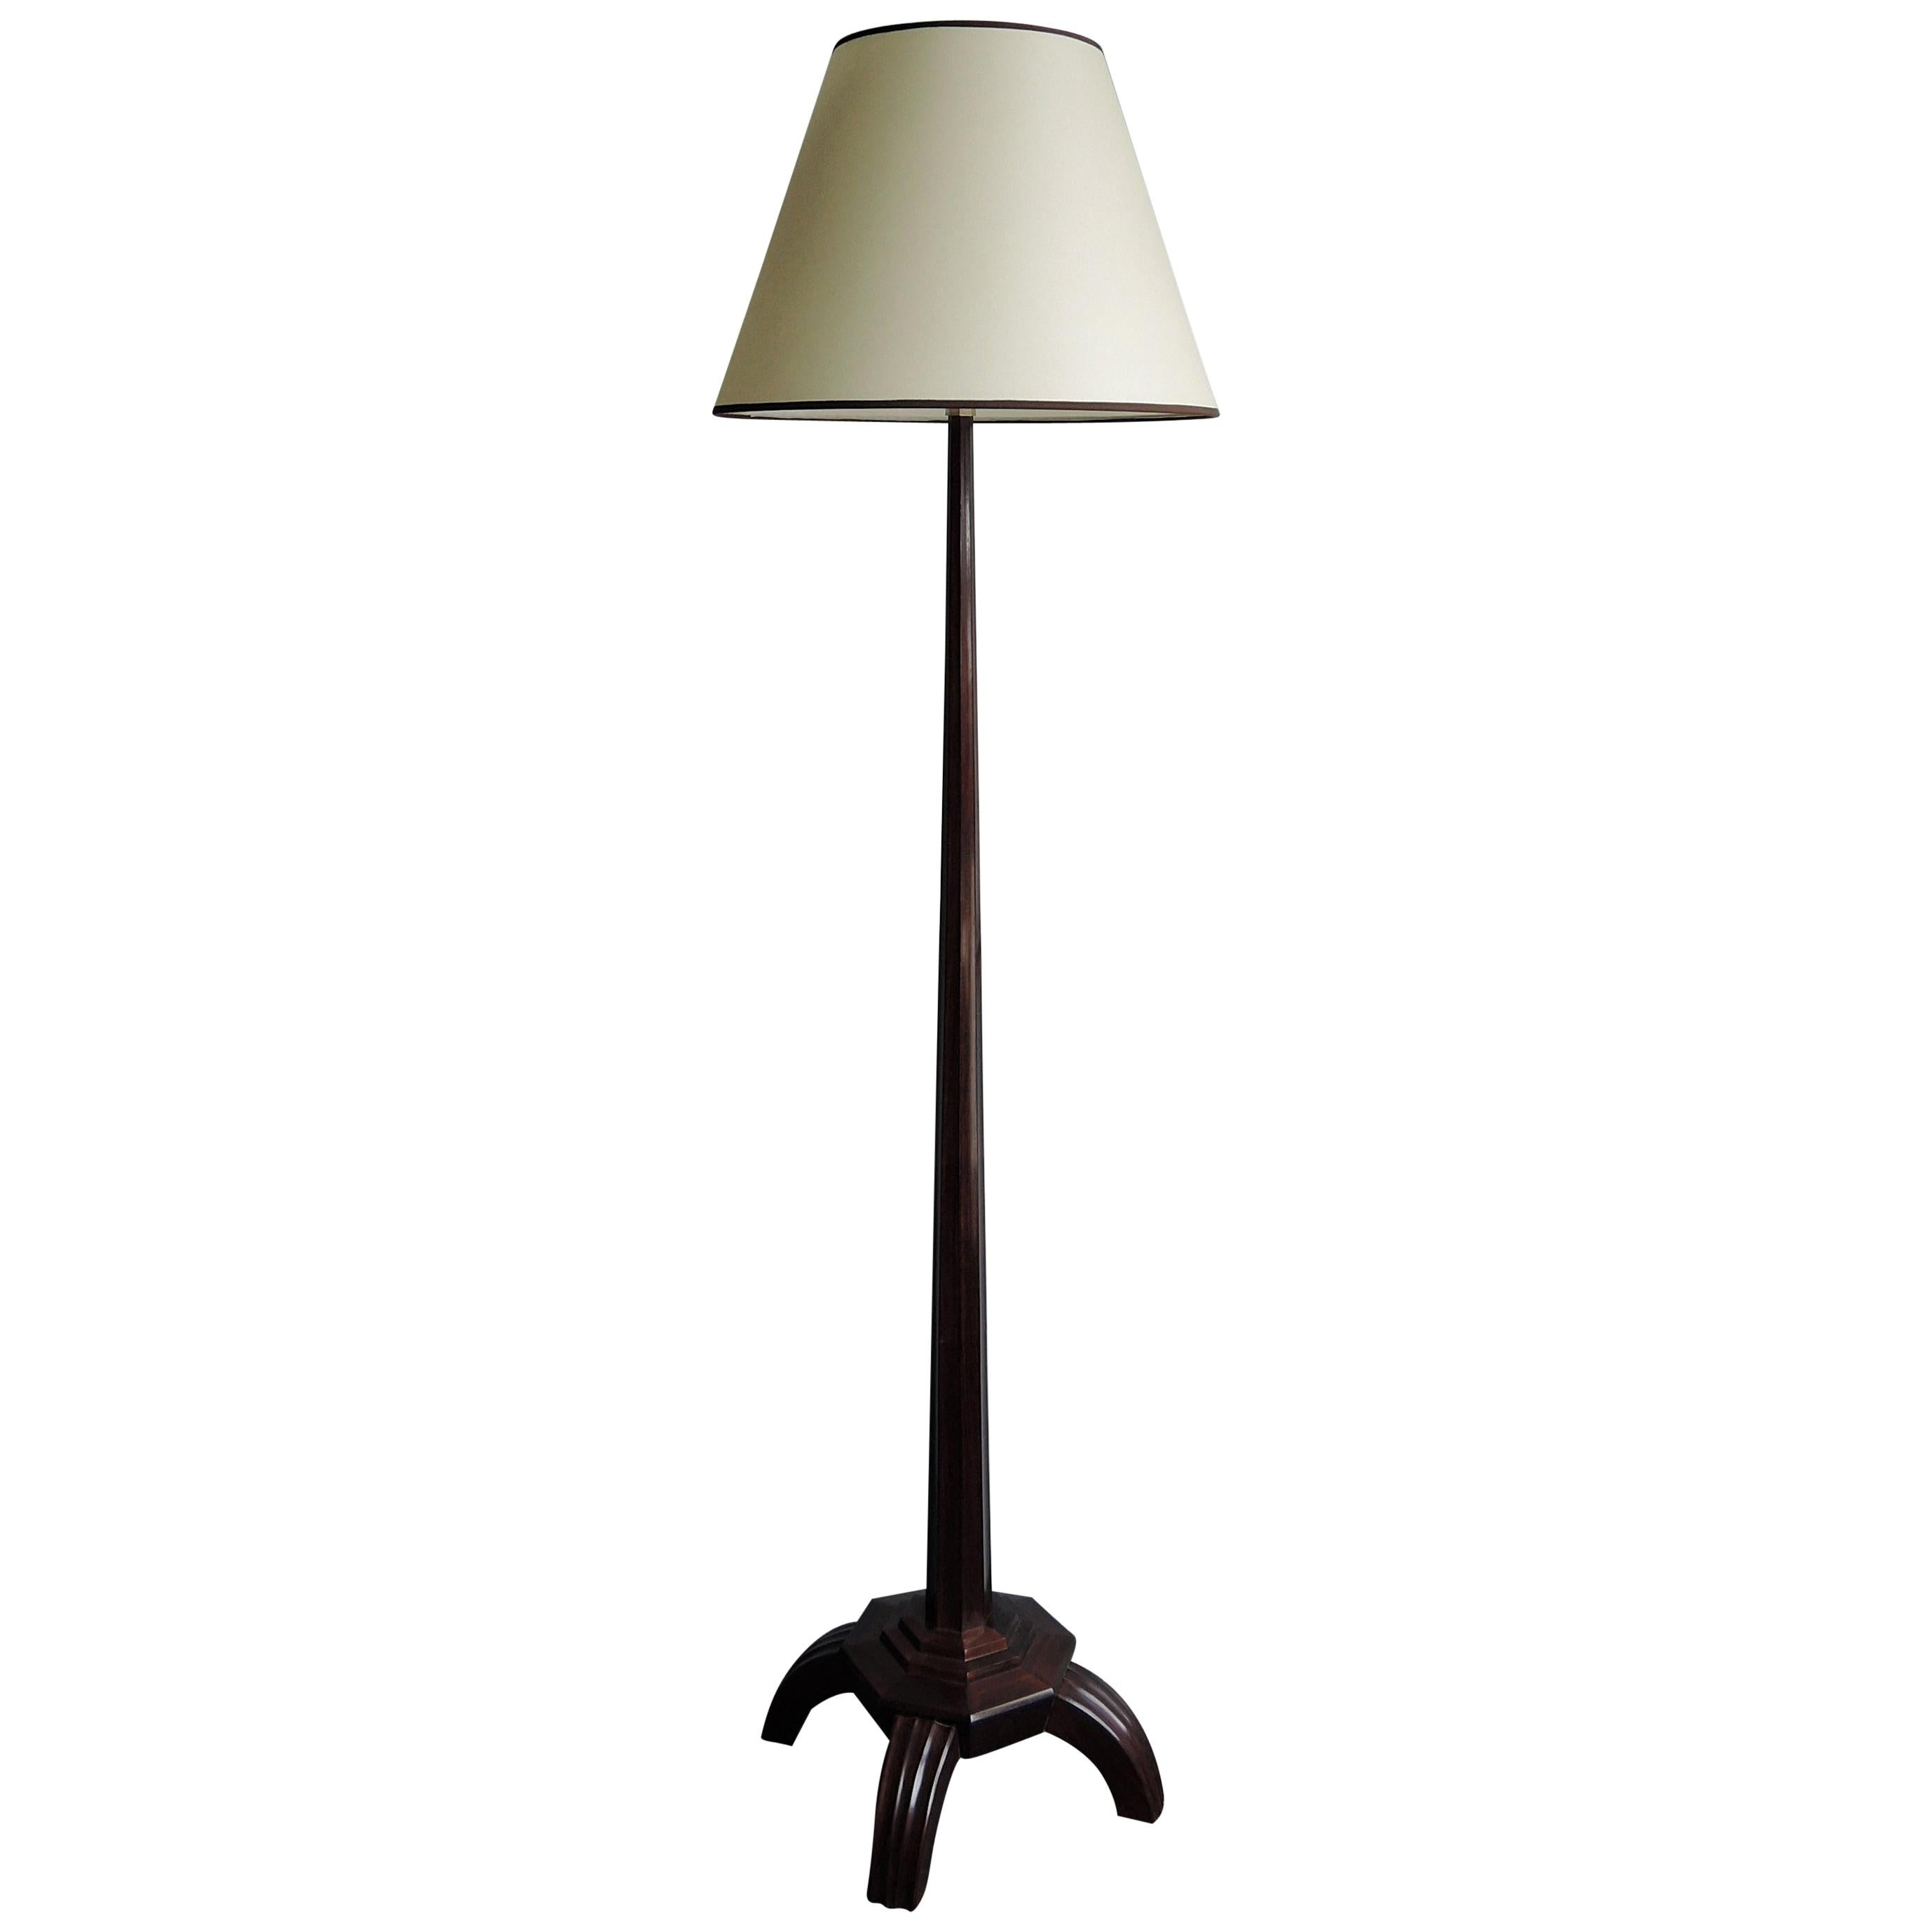 Fine and Rare French Art Deco Rosewood Floor Lamp